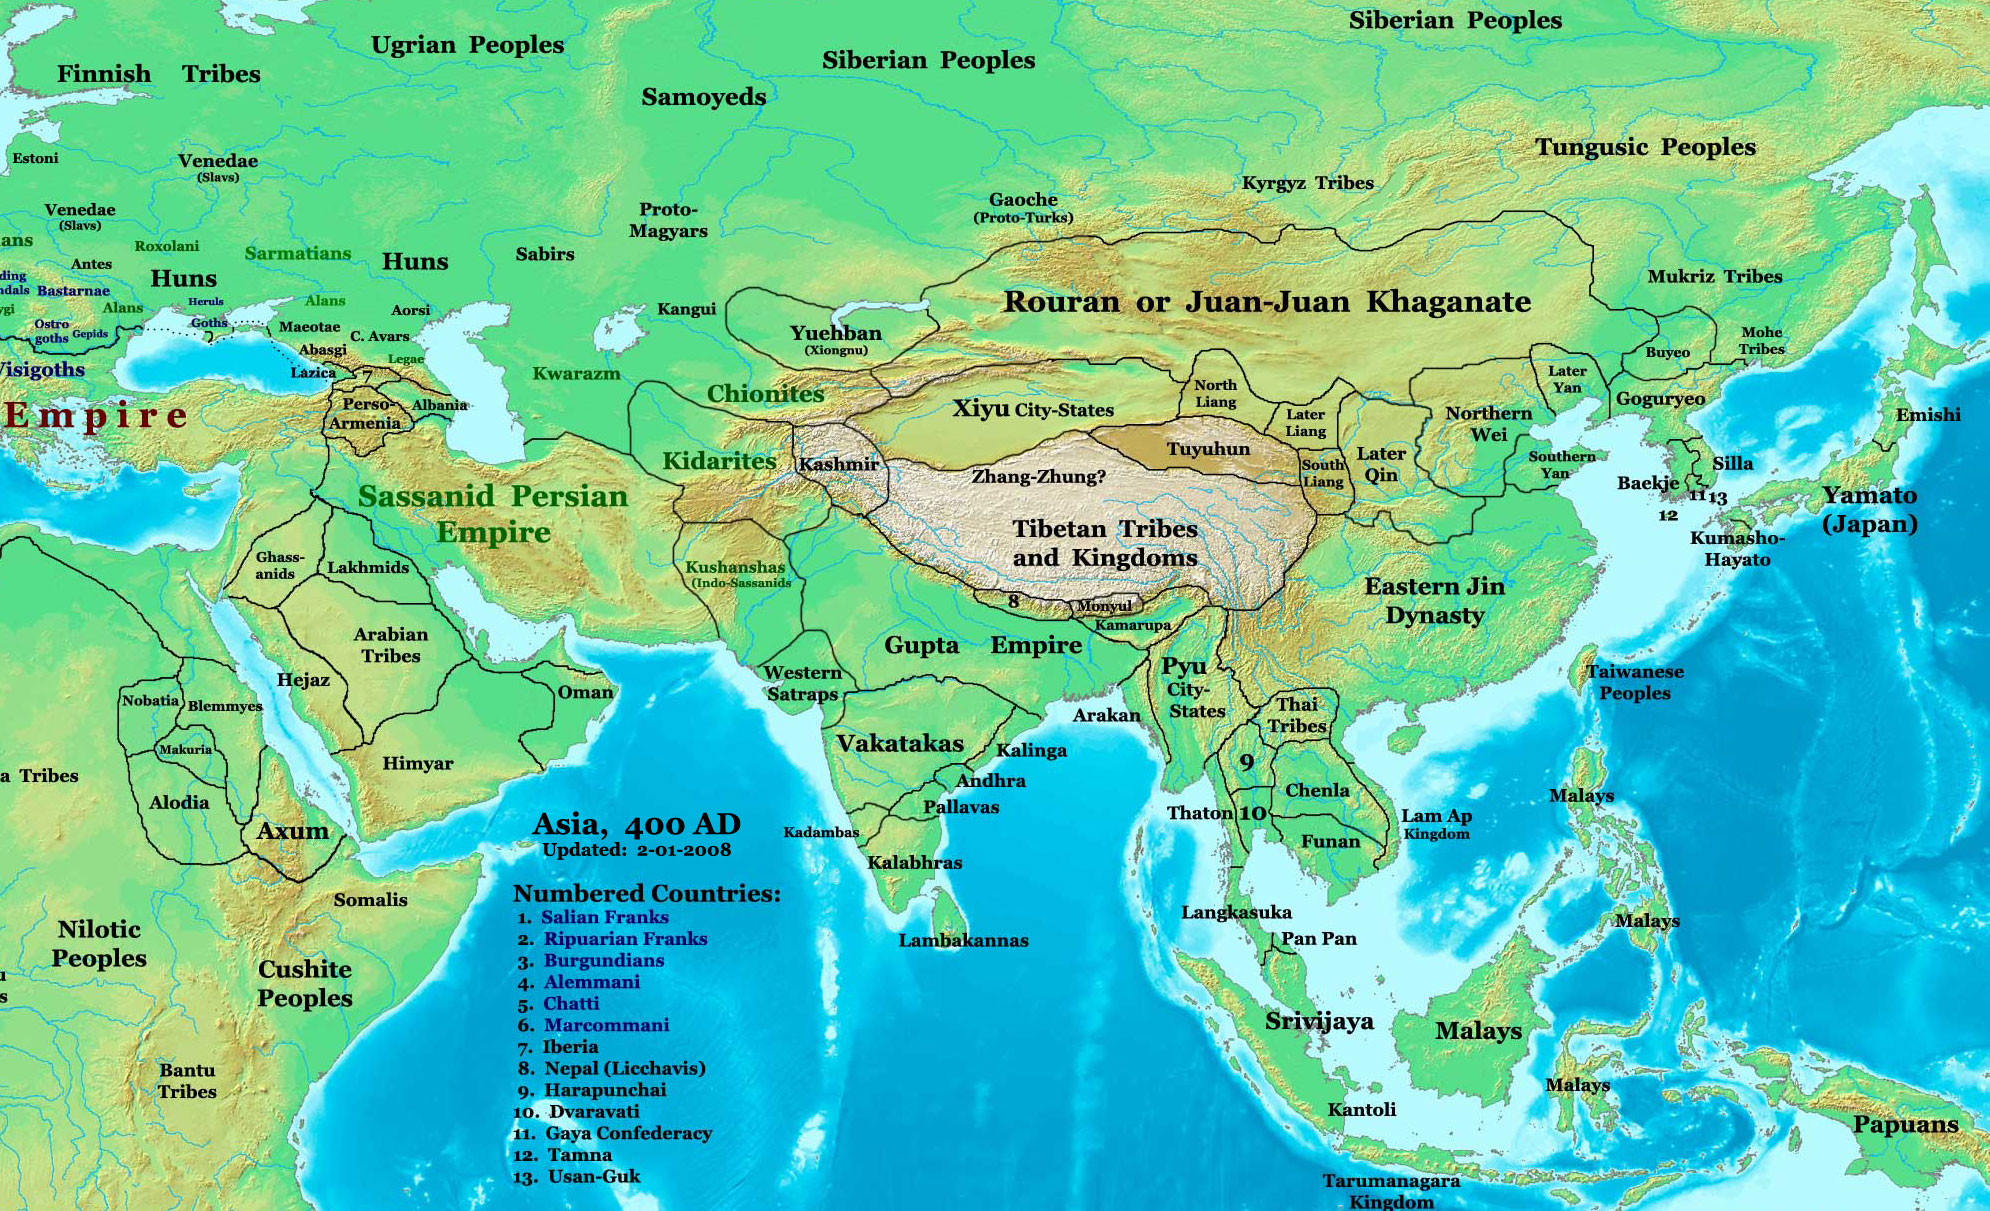 https://i0.wp.com/upload.wikimedia.org/wikipedia/commons/8/80/Asia_400ad.jpg